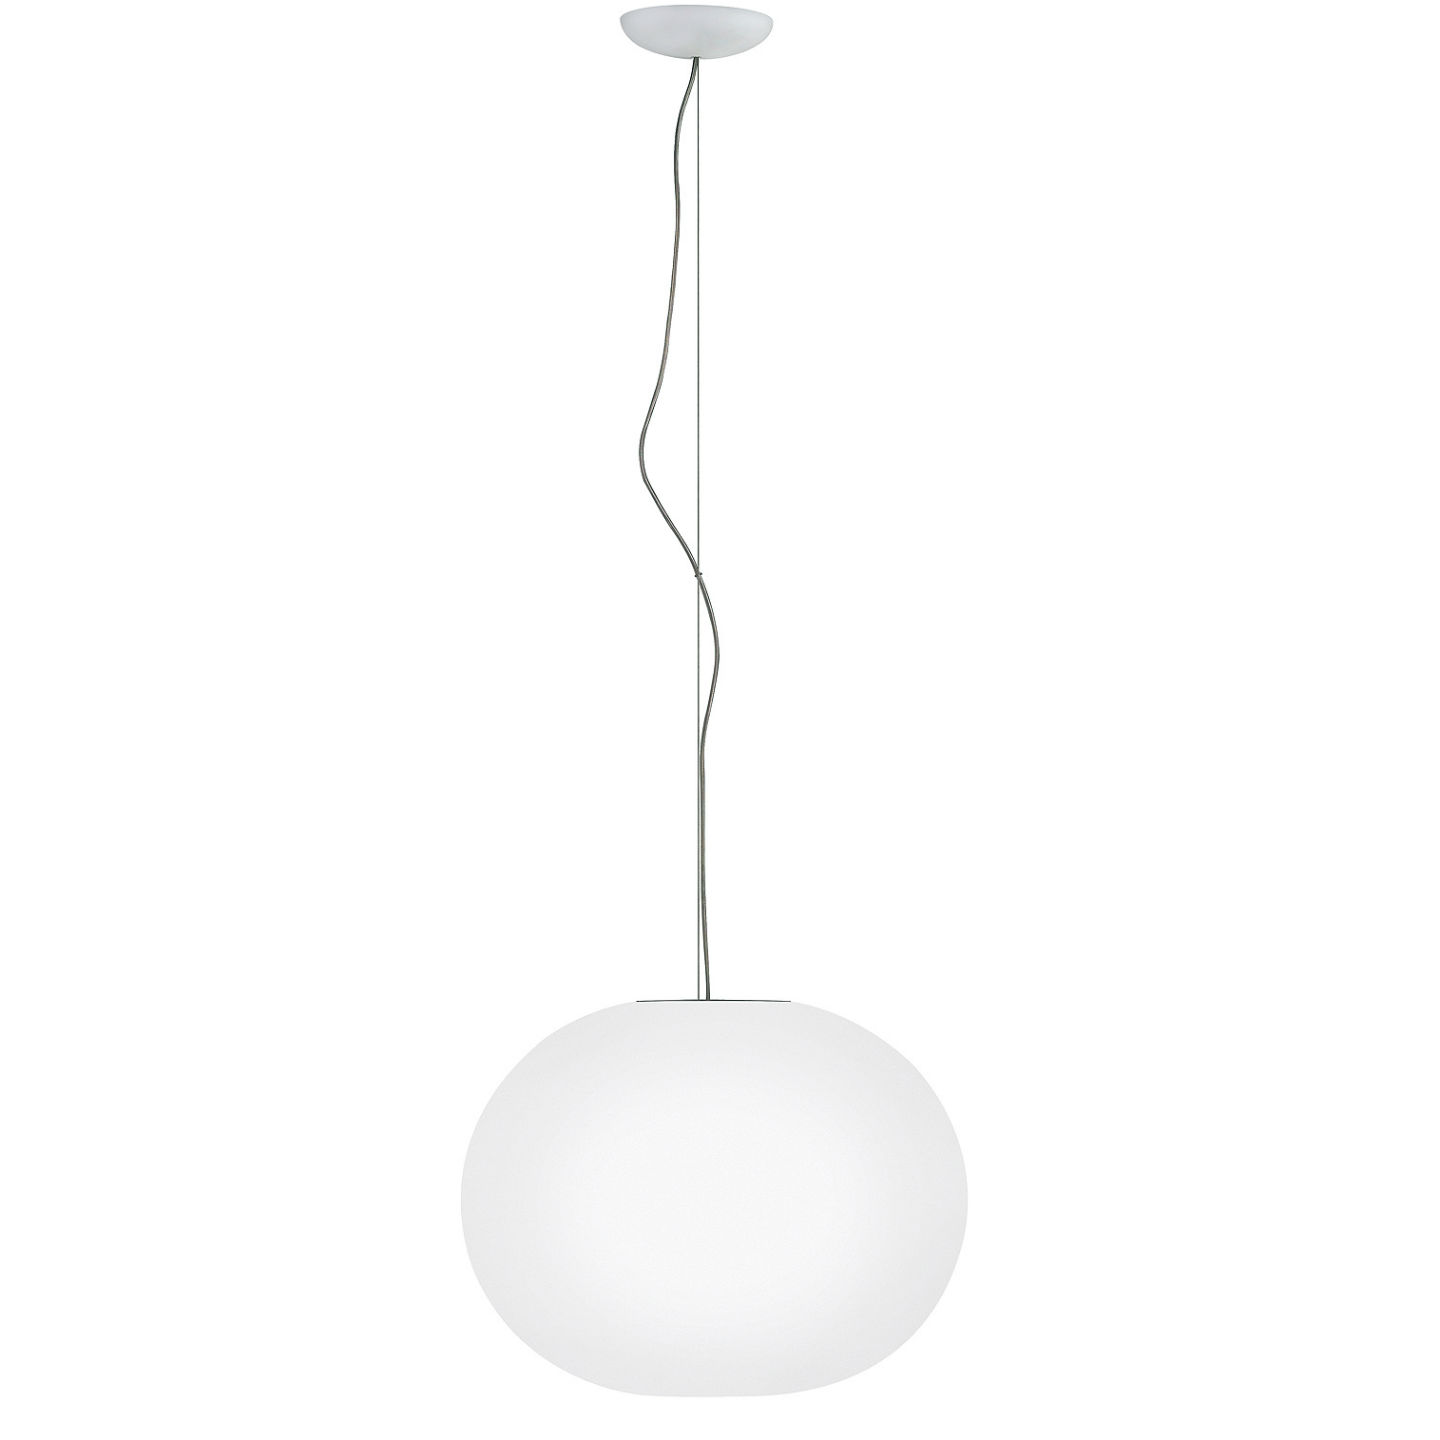 Glo Ball S2 Suspension 45cm E27 205W - blanc opale